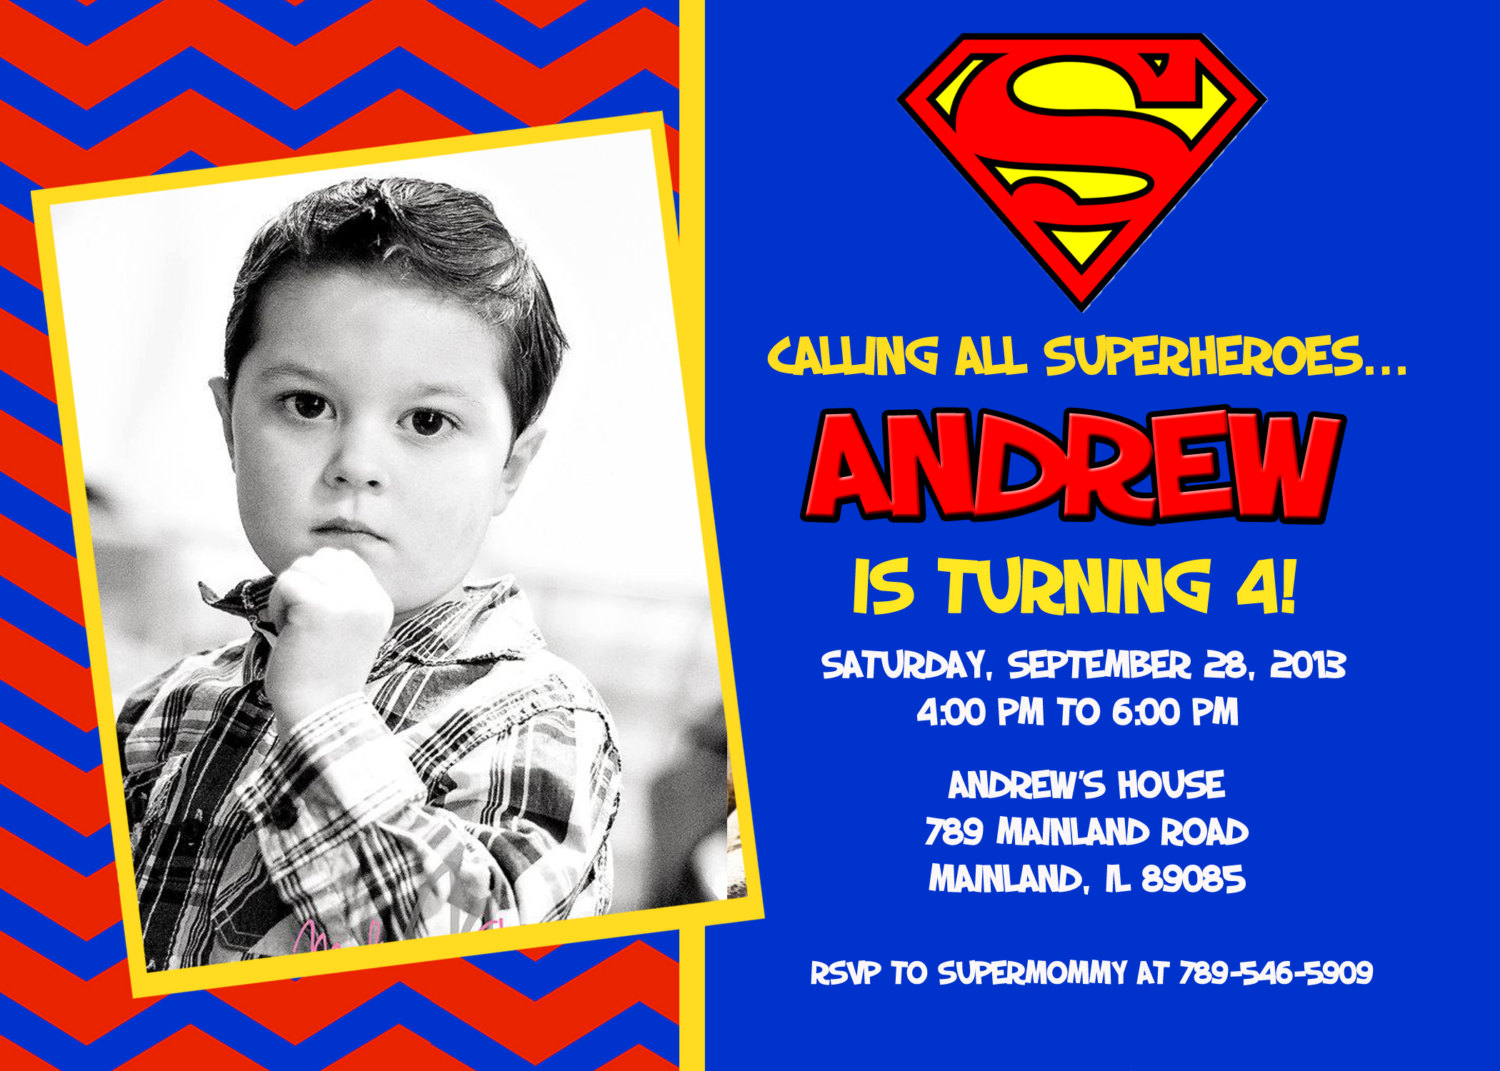 superman birthday invitation template ; superman-birthday-invitations-for-the-good-Birthday-Invitation-you-can-choose-4